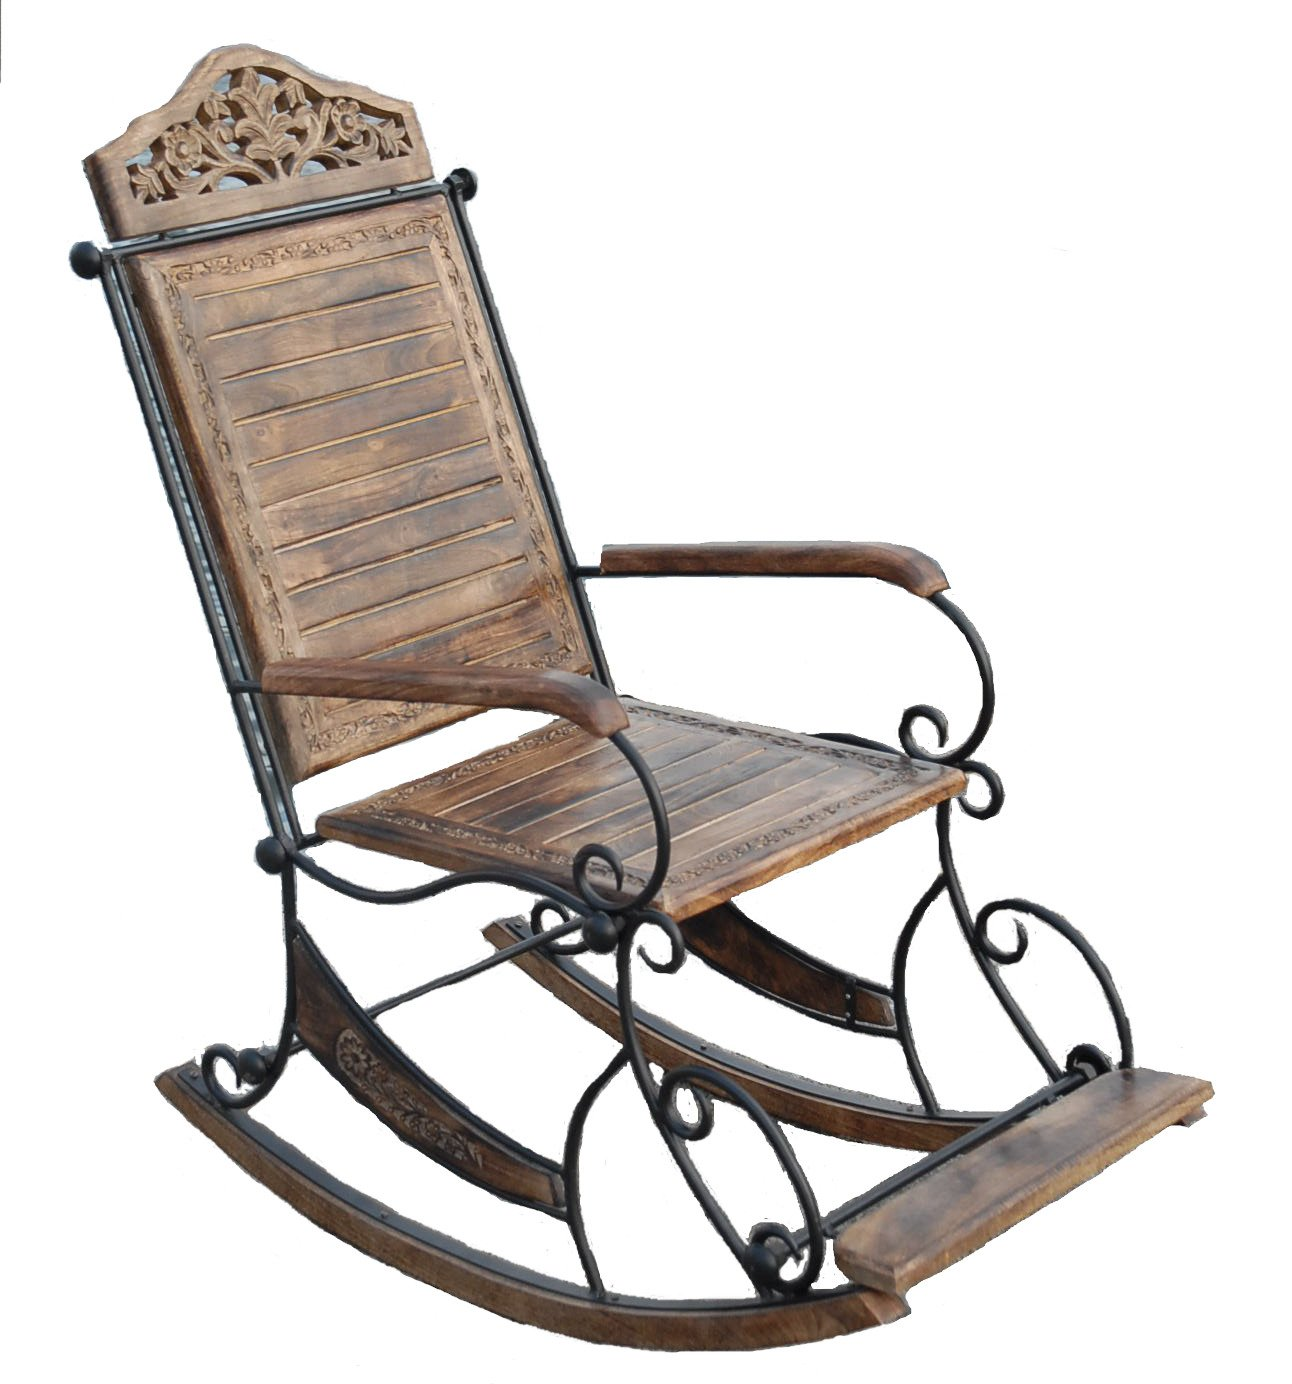 Groovy Rocking Chair Seat Solid Mango Wood Wrought Iron Living Camellatalisay Diy Chair Ideas Camellatalisaycom